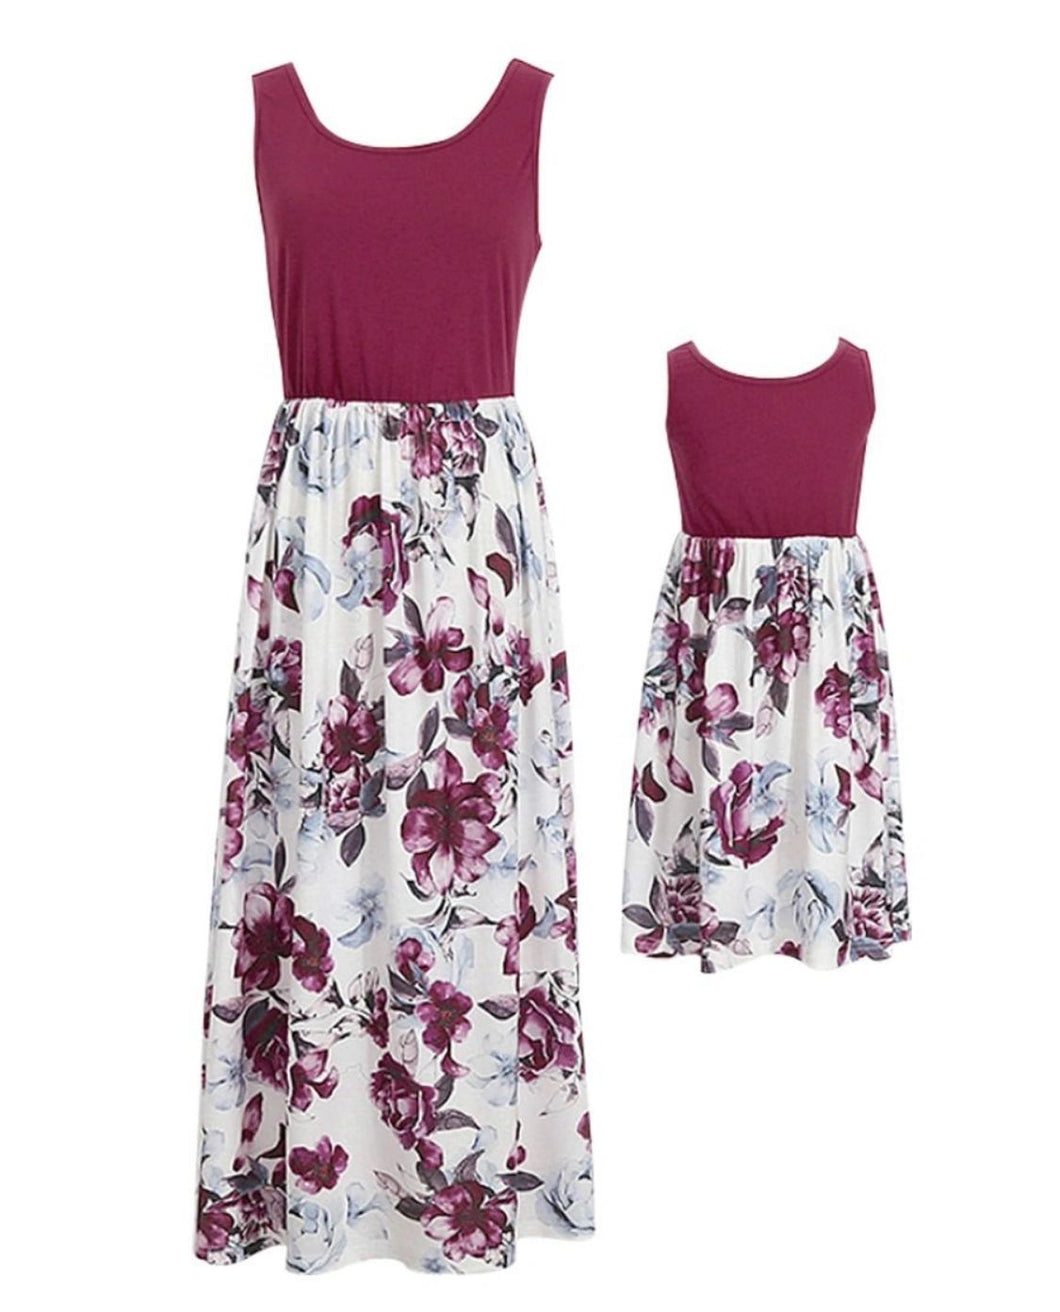 Mummy and me matching dress; maroon and white flowers